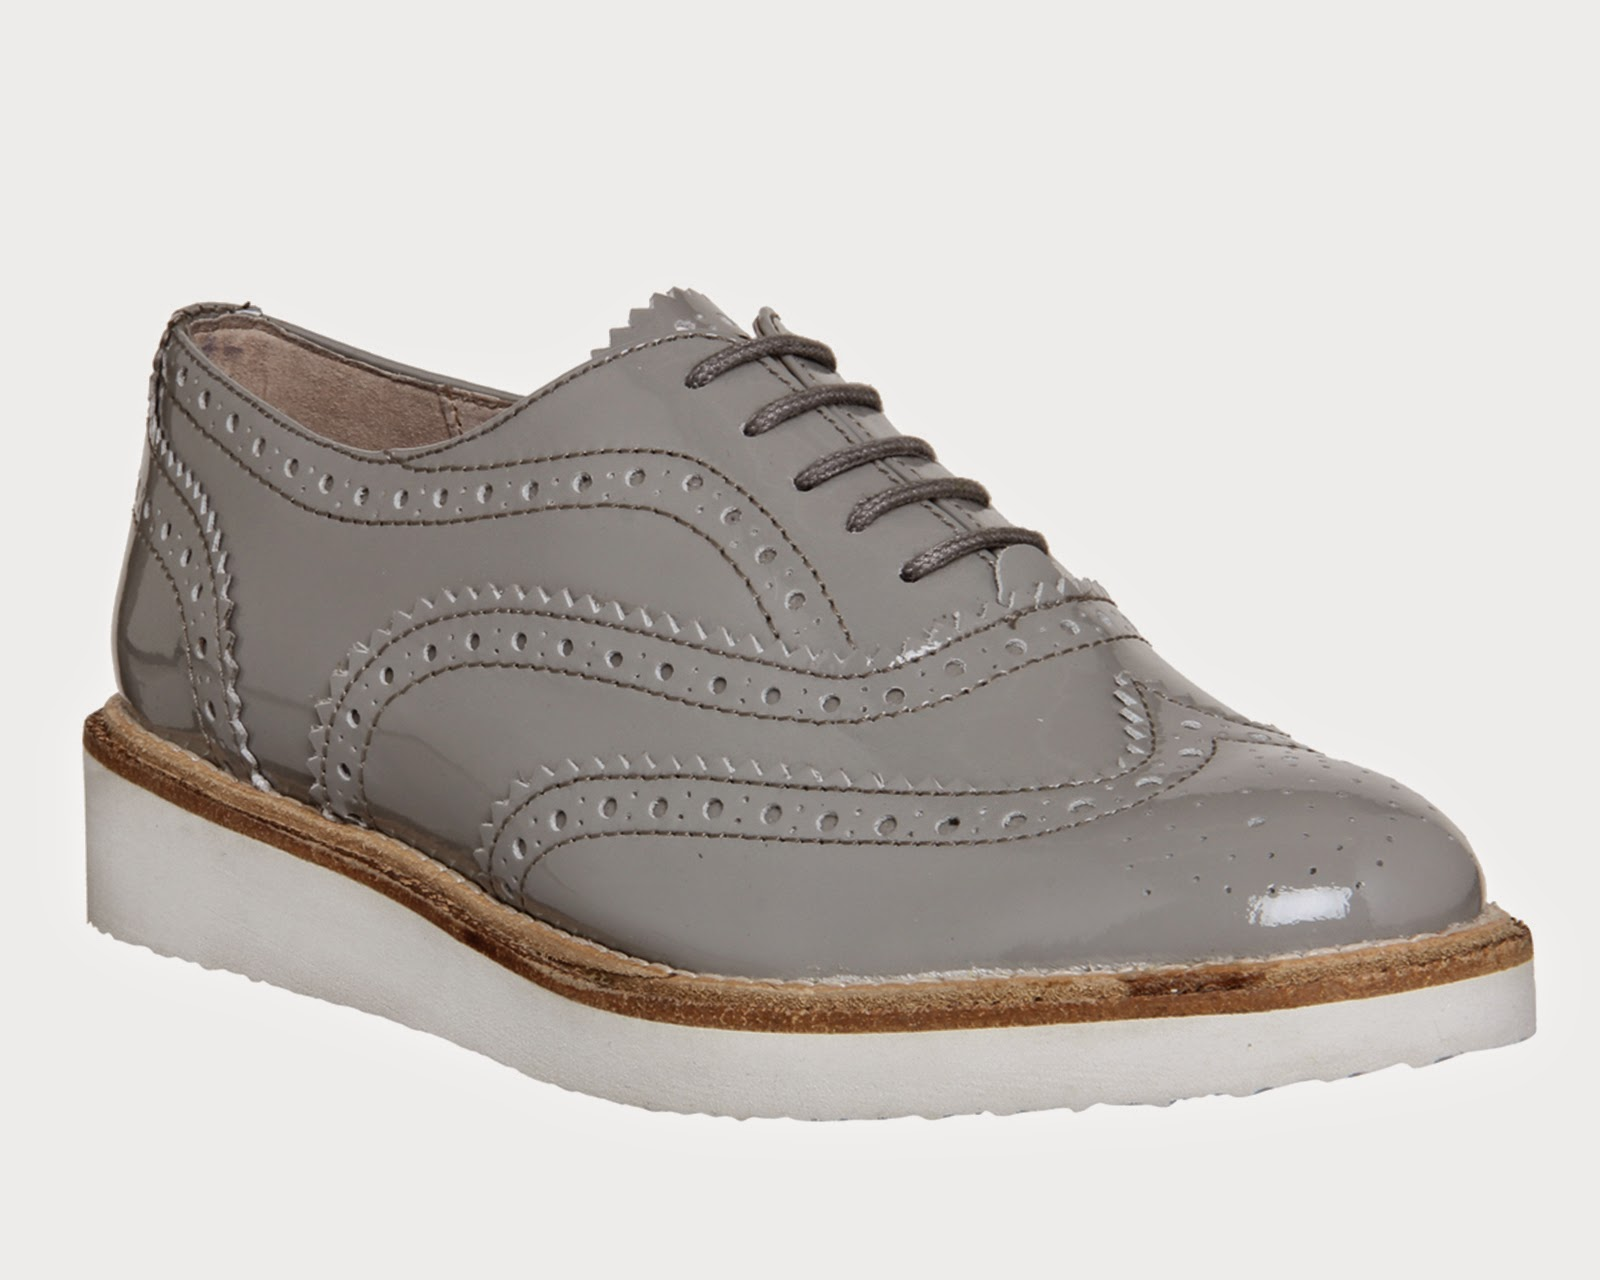 office grey patent brogues, office grey brogue, office grey patent shoes,